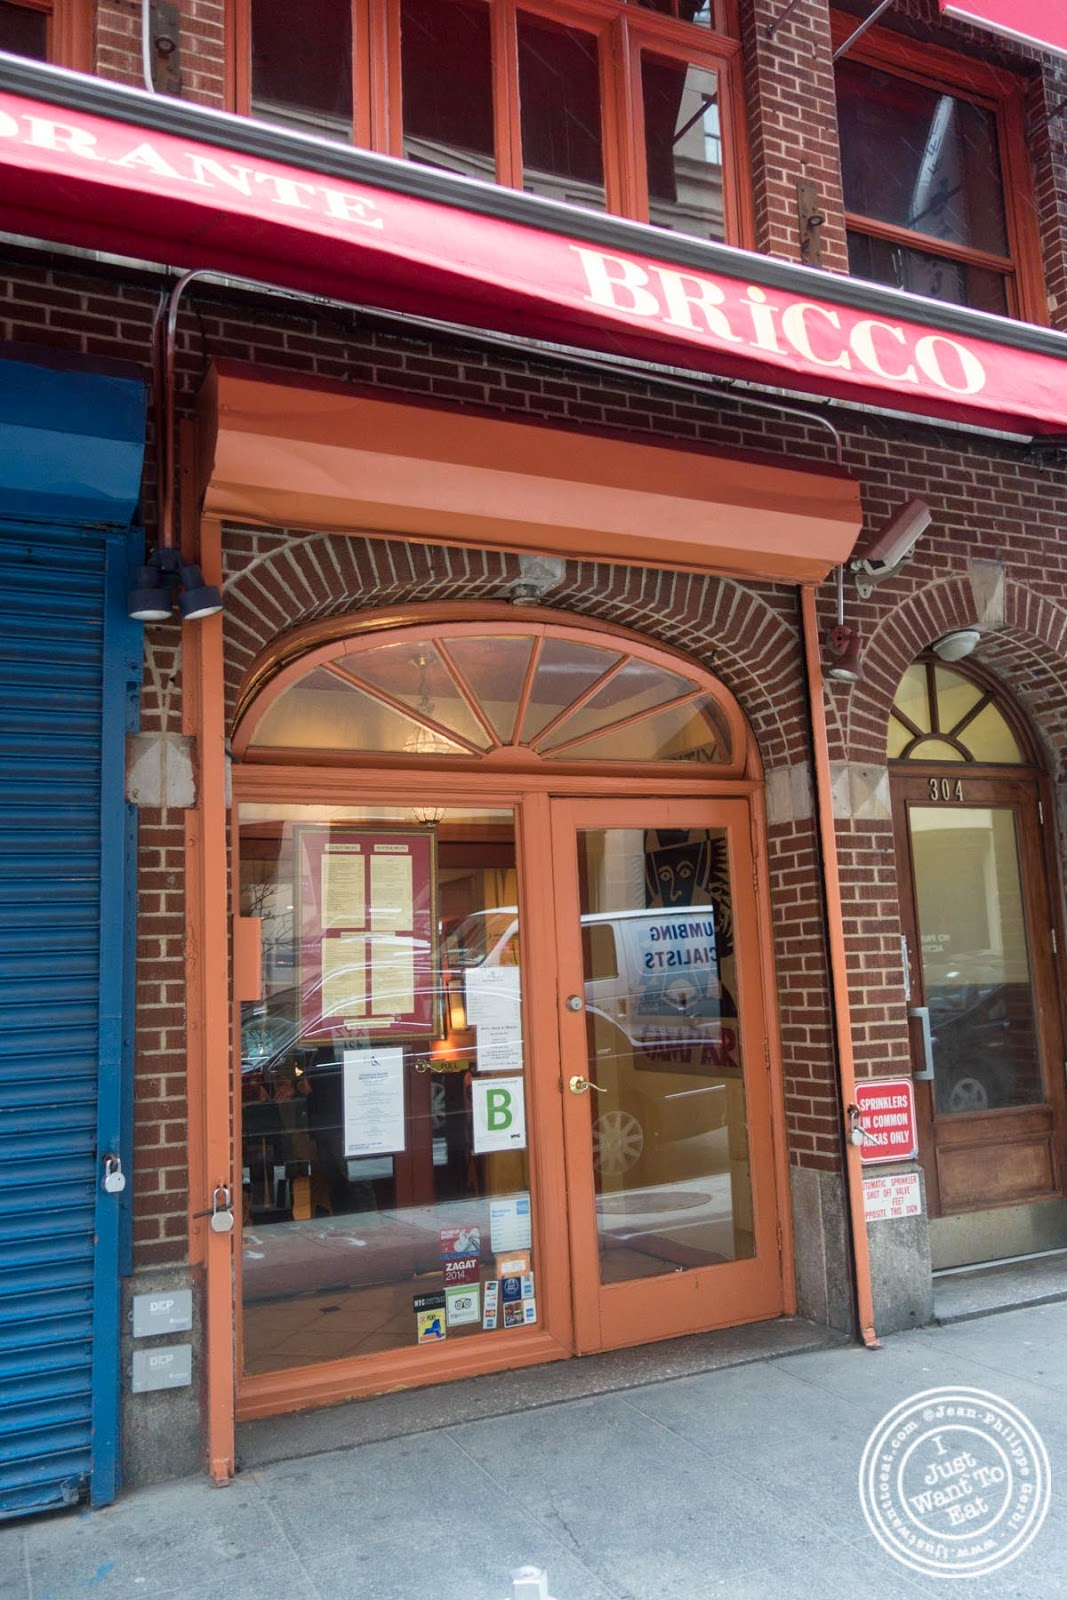 image of Bricco in Hell's Kitchen, NYC,NY